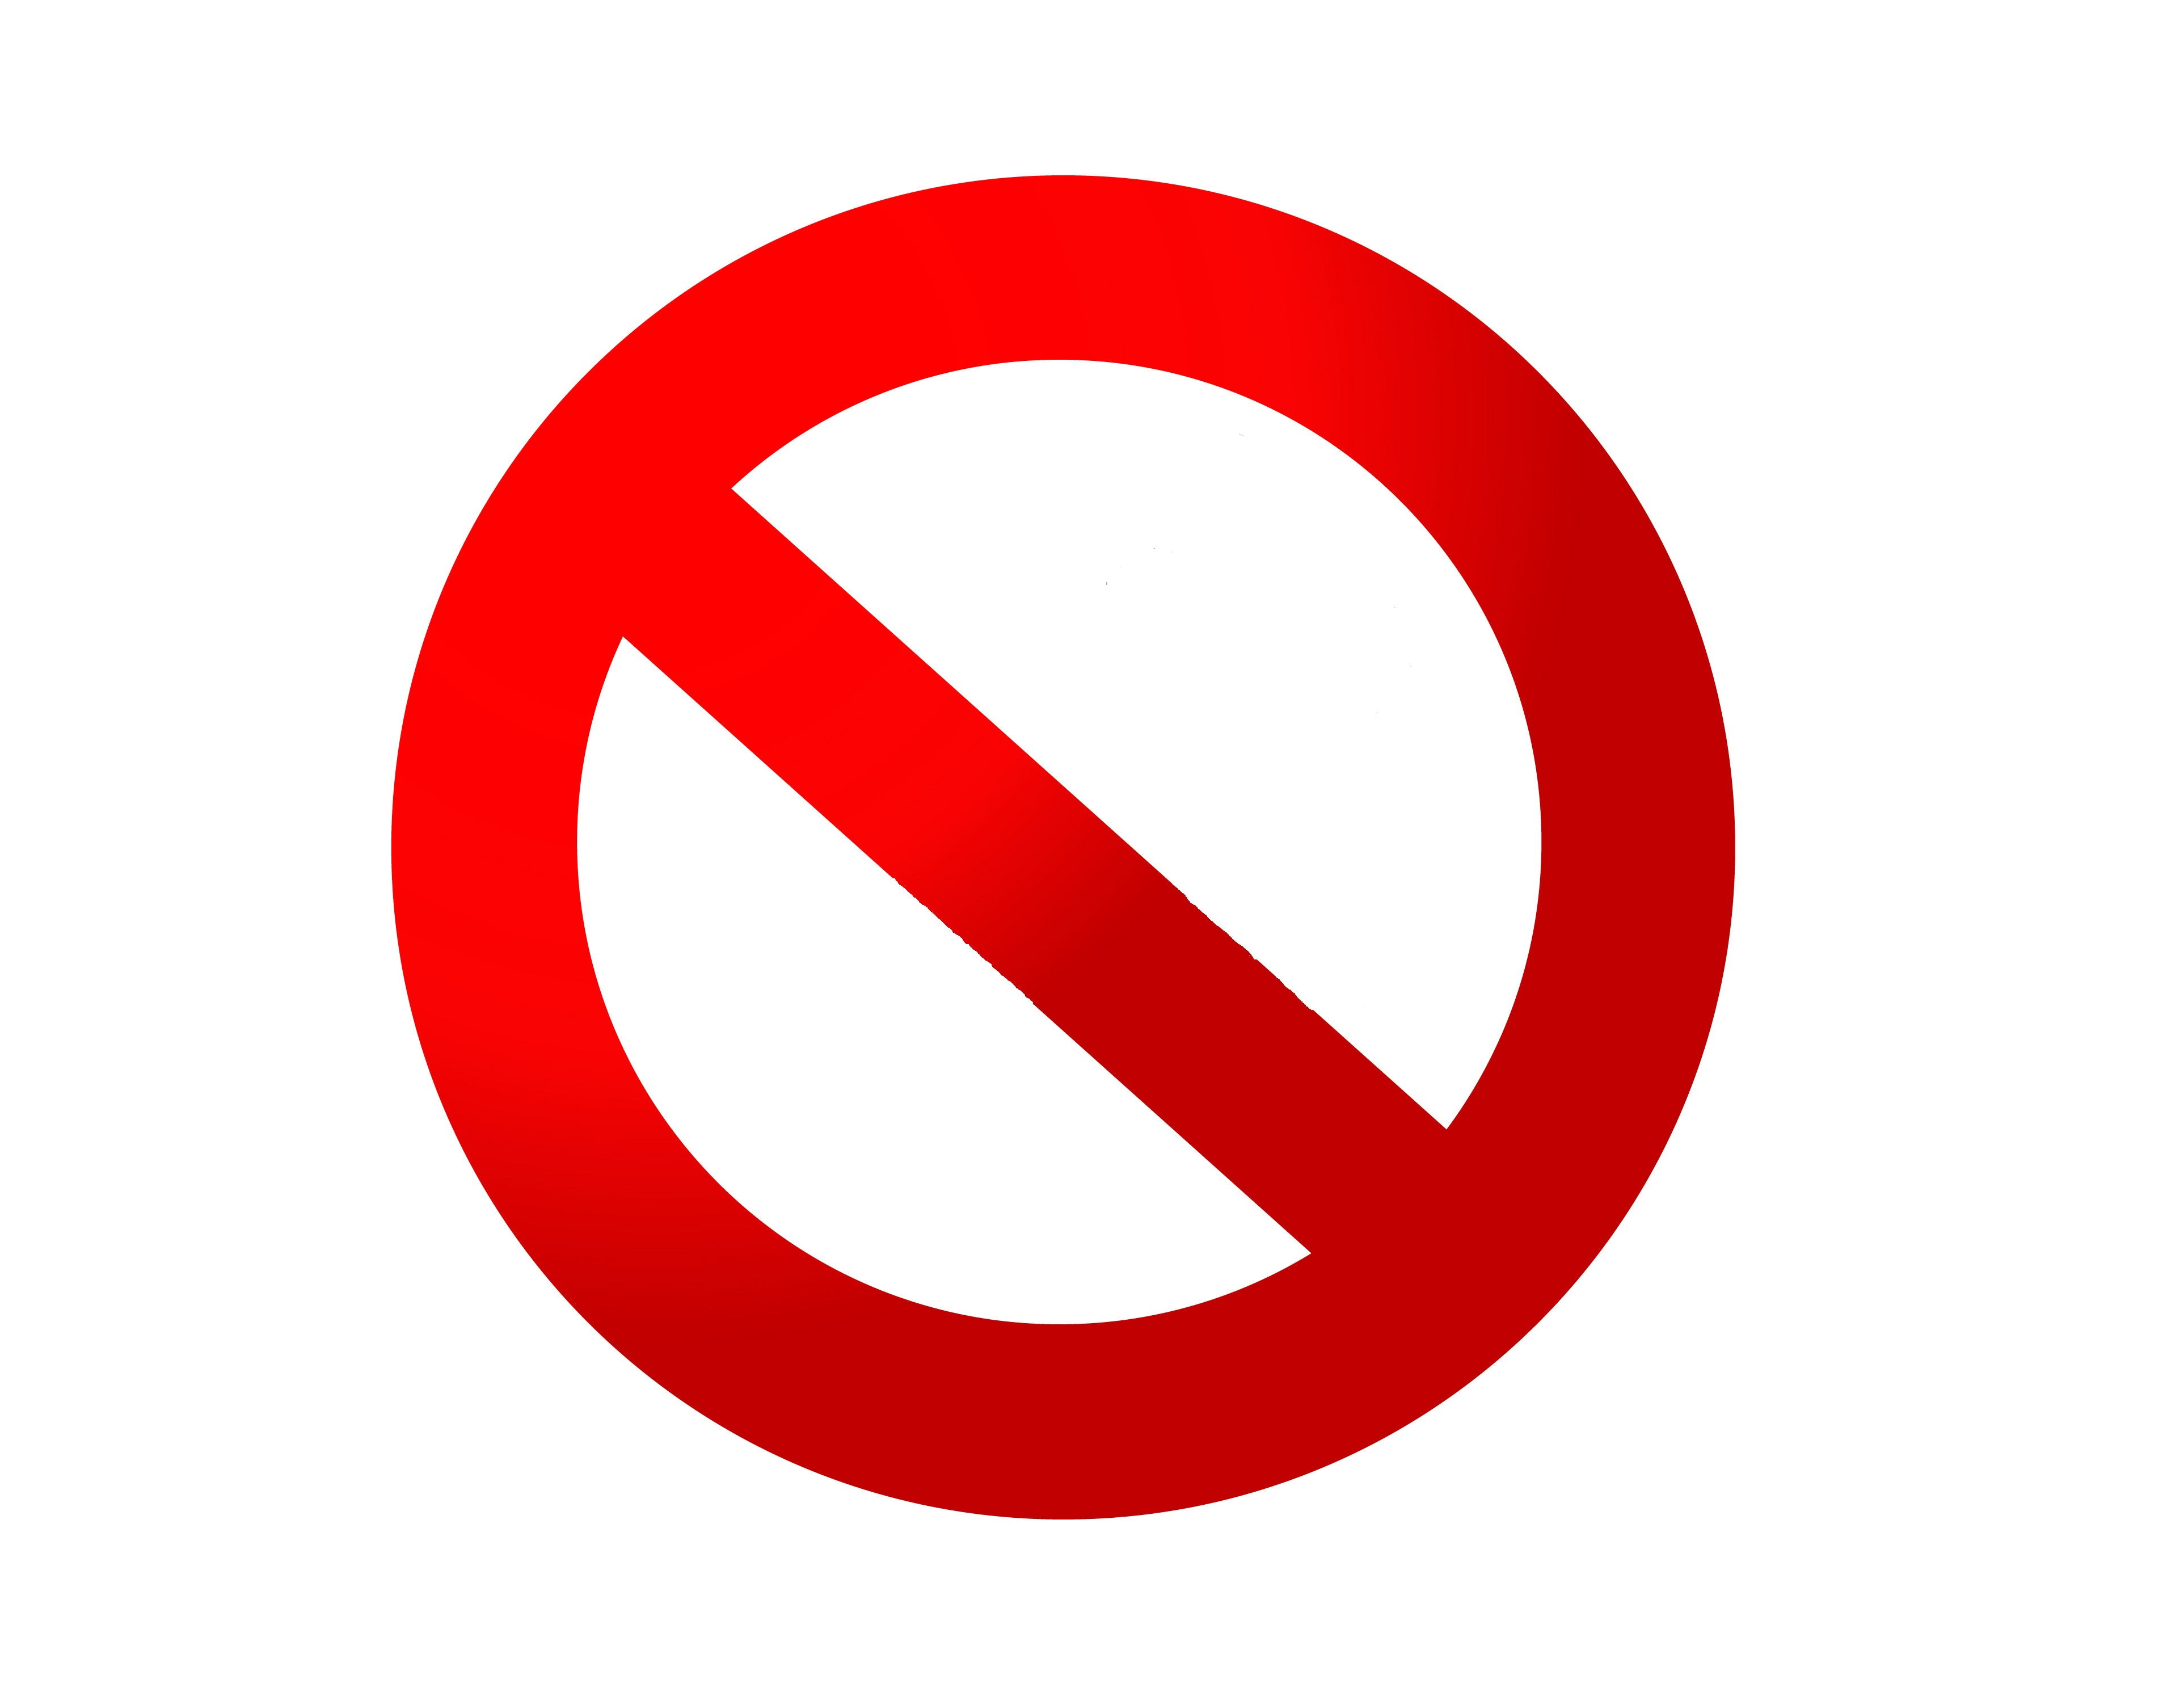 No Signs Downloadable Clipart - Clipart Kid